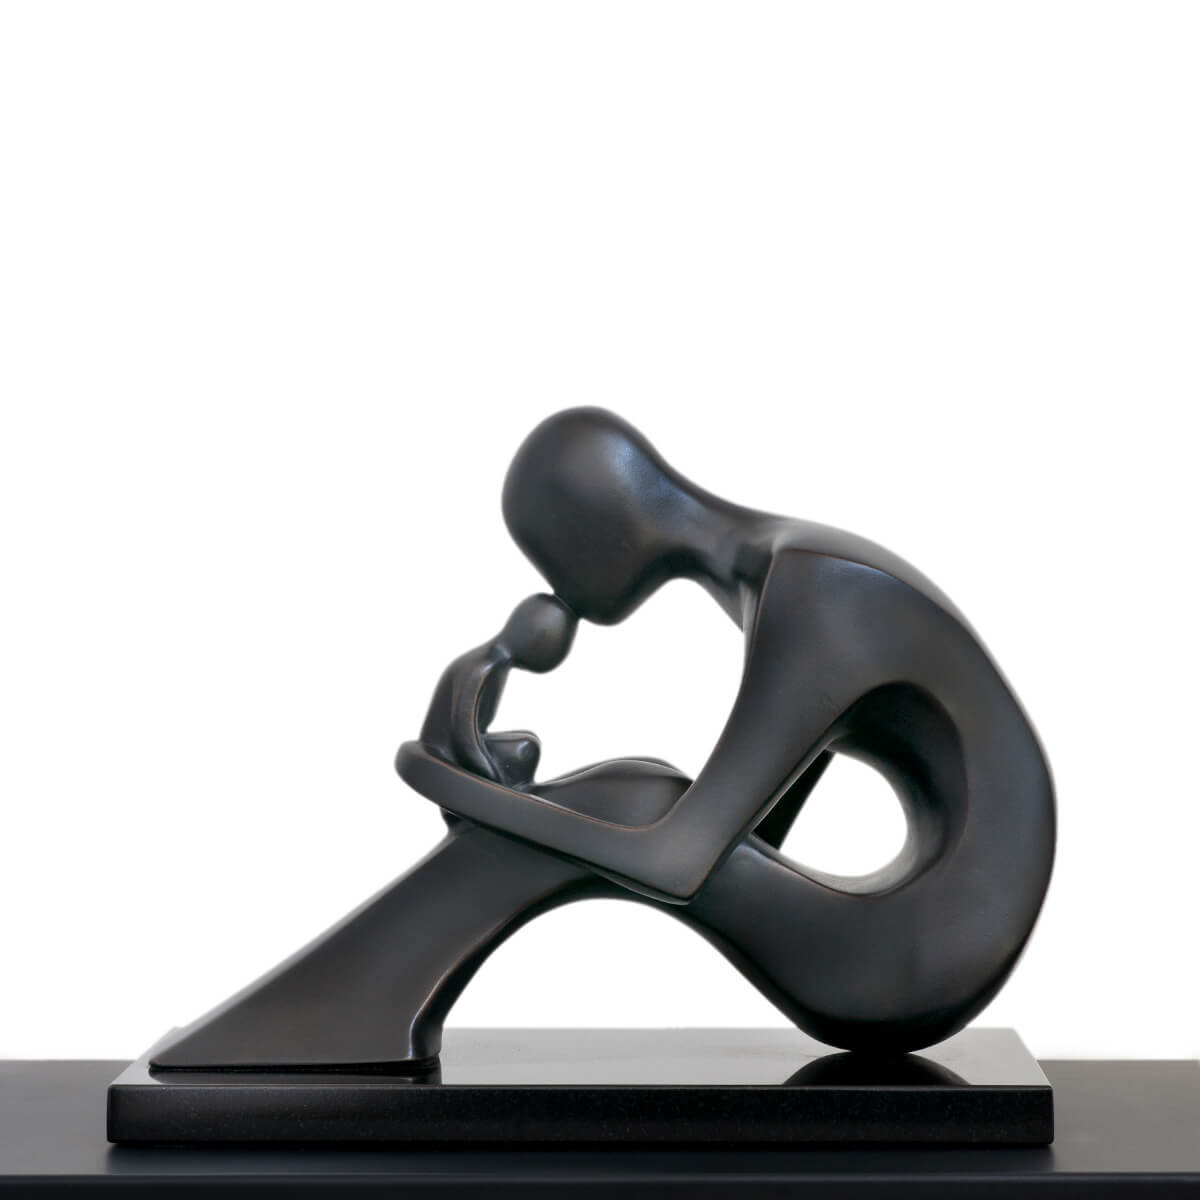 Robert-Helle-Sculpture-Gallery-Header-1-Mother-Child-1200x1200